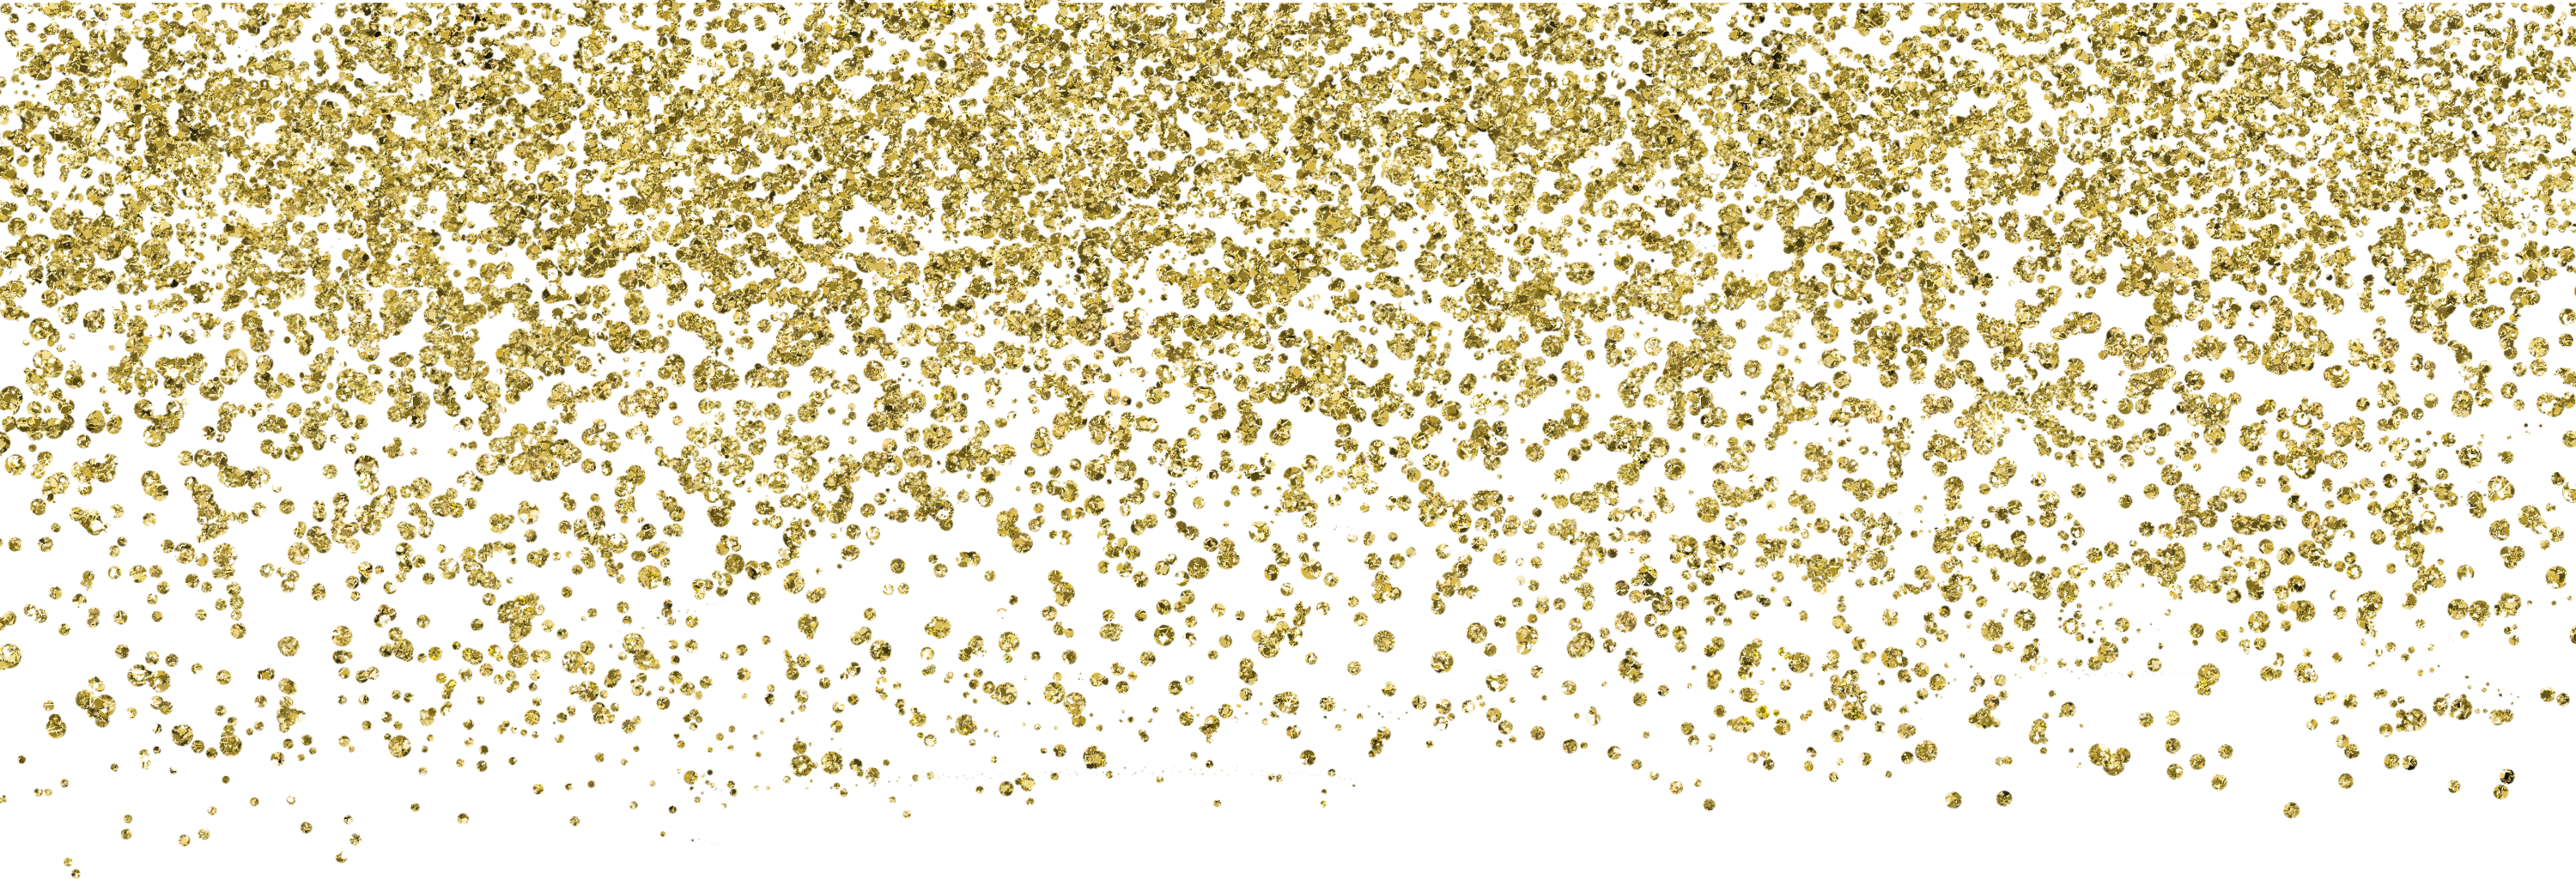 Falling gold glitter png.